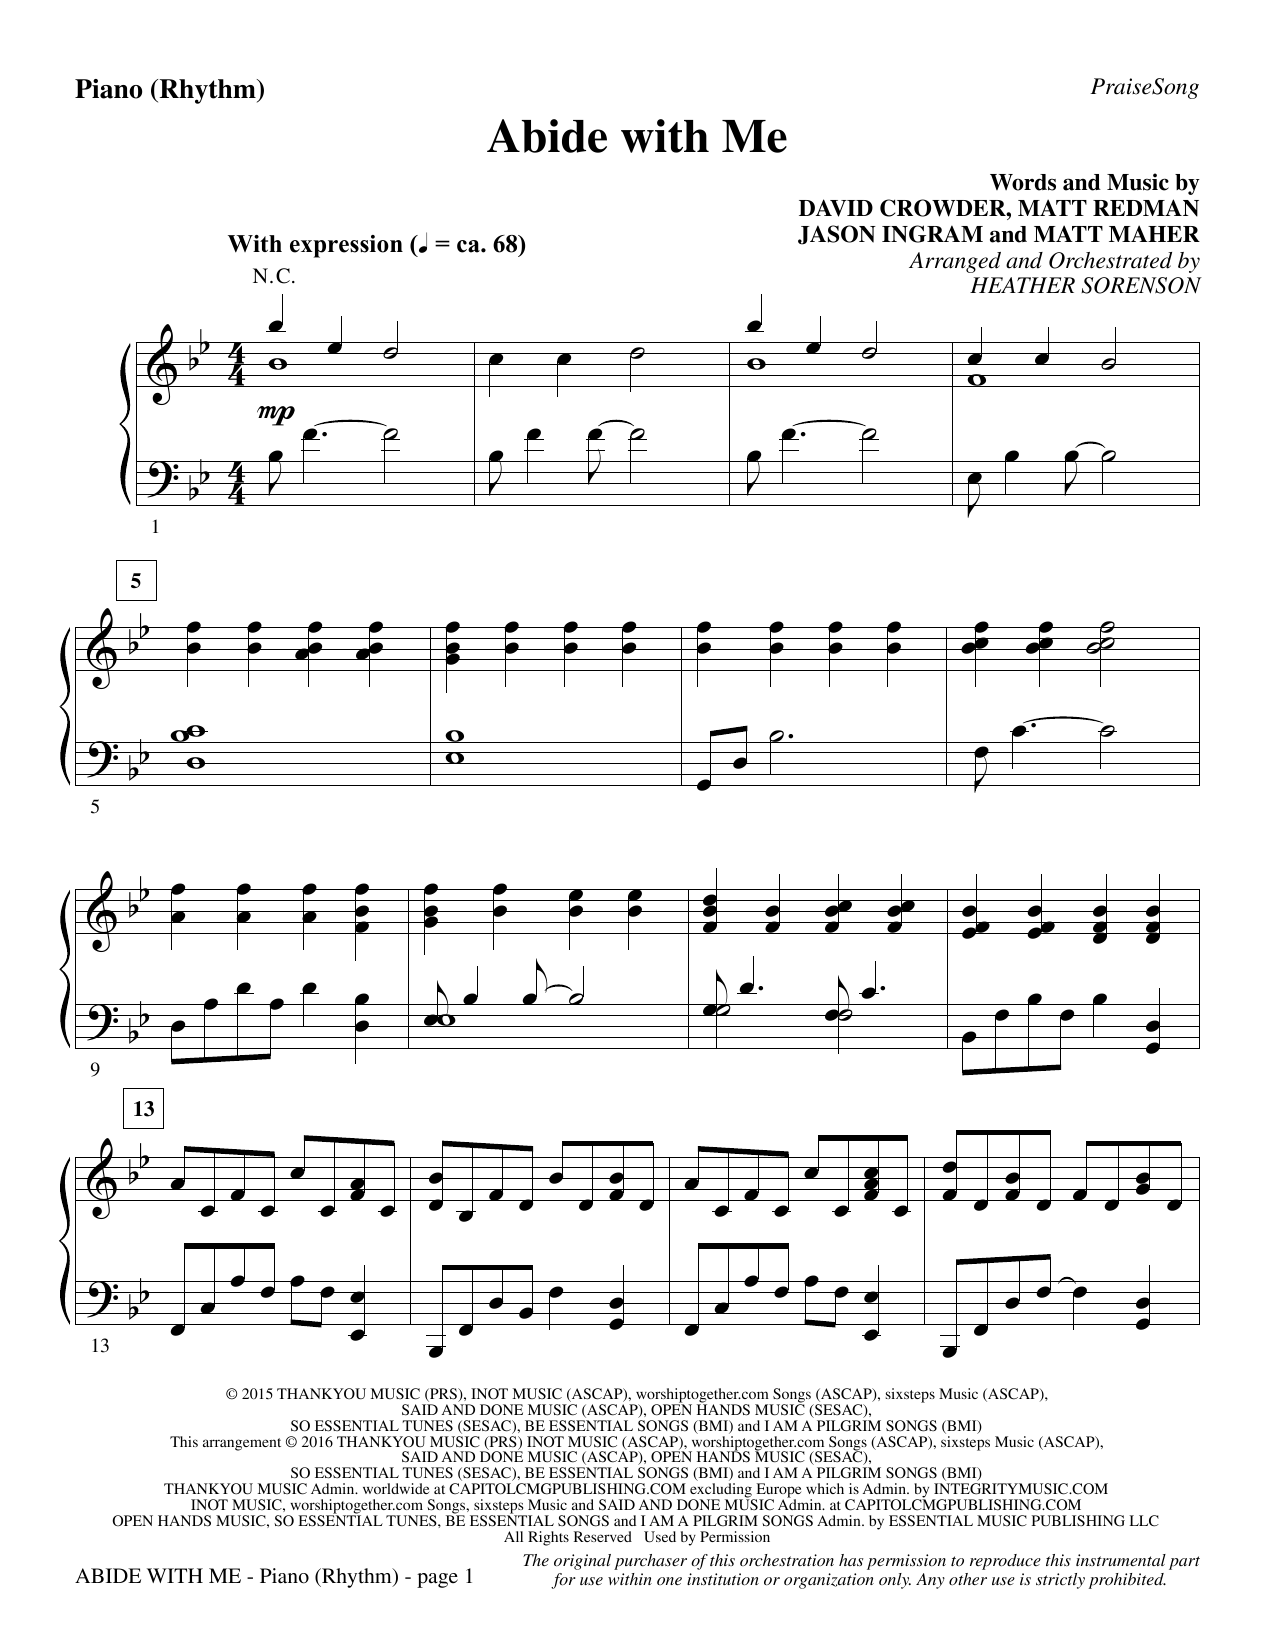 Abide with Me - Piano/Rhythm